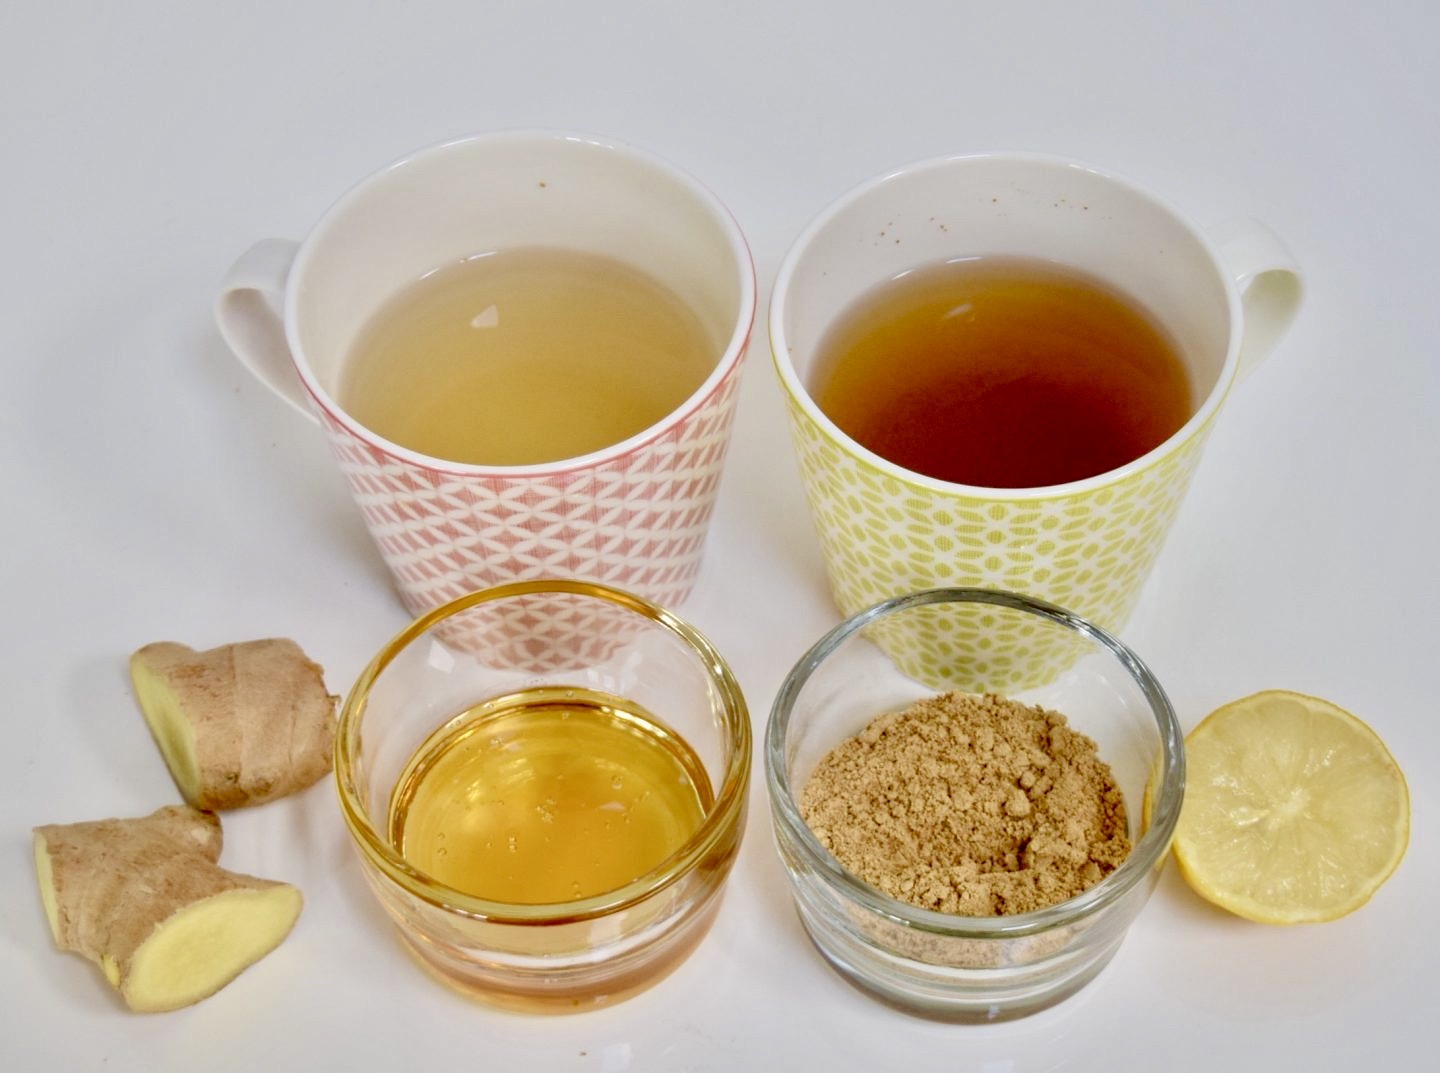 Recipe: Ginger & Lemon infusion | Recette: Infusion au gingembre et citron